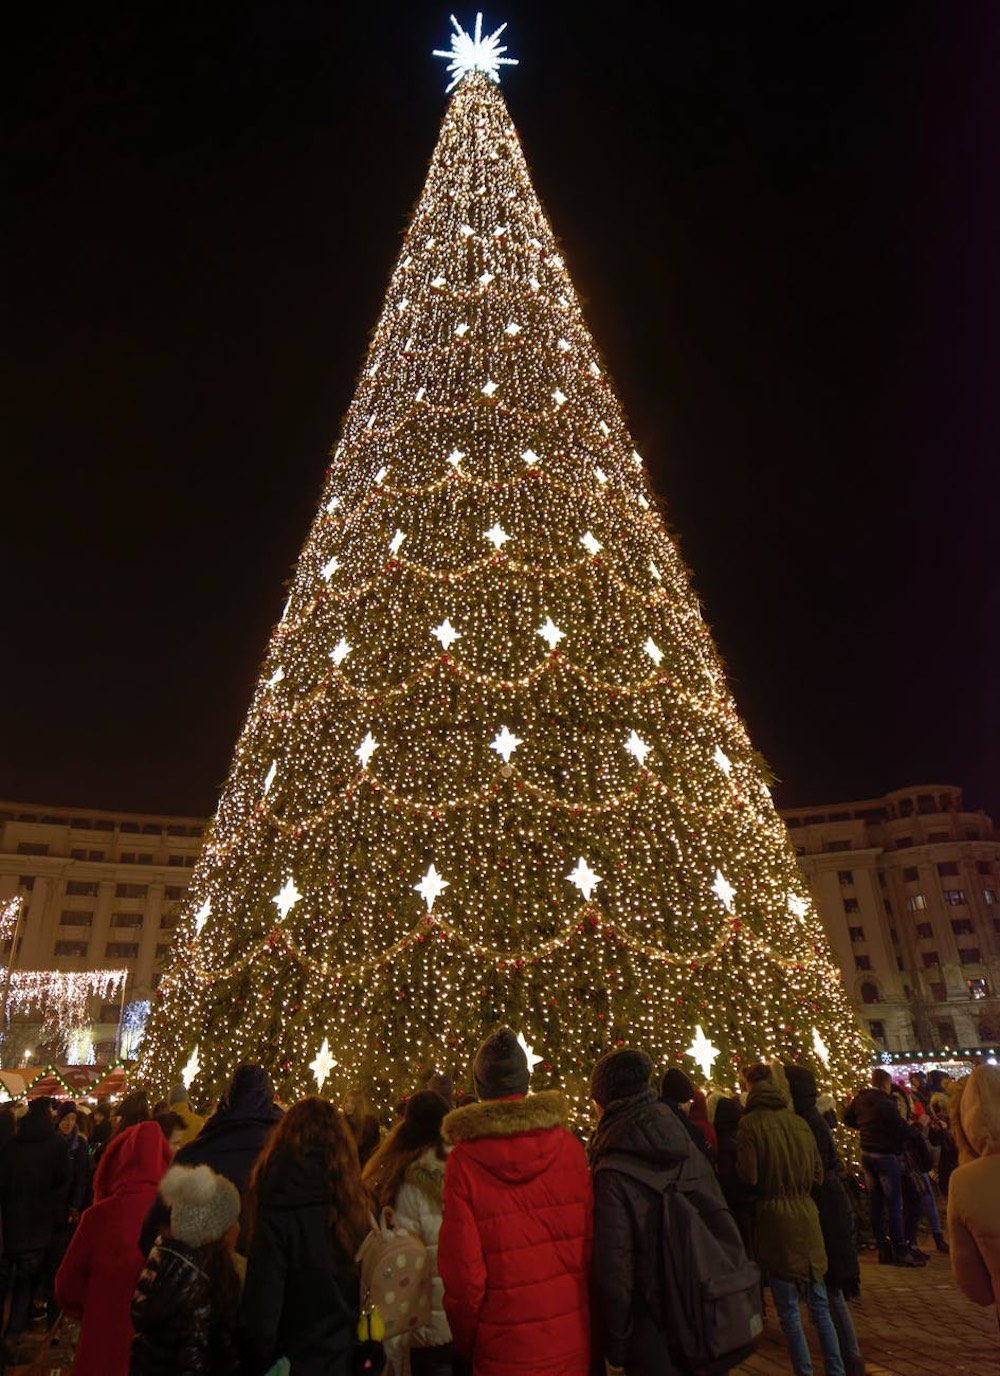 4 world's most festive cities to celebrate Christmas this year!